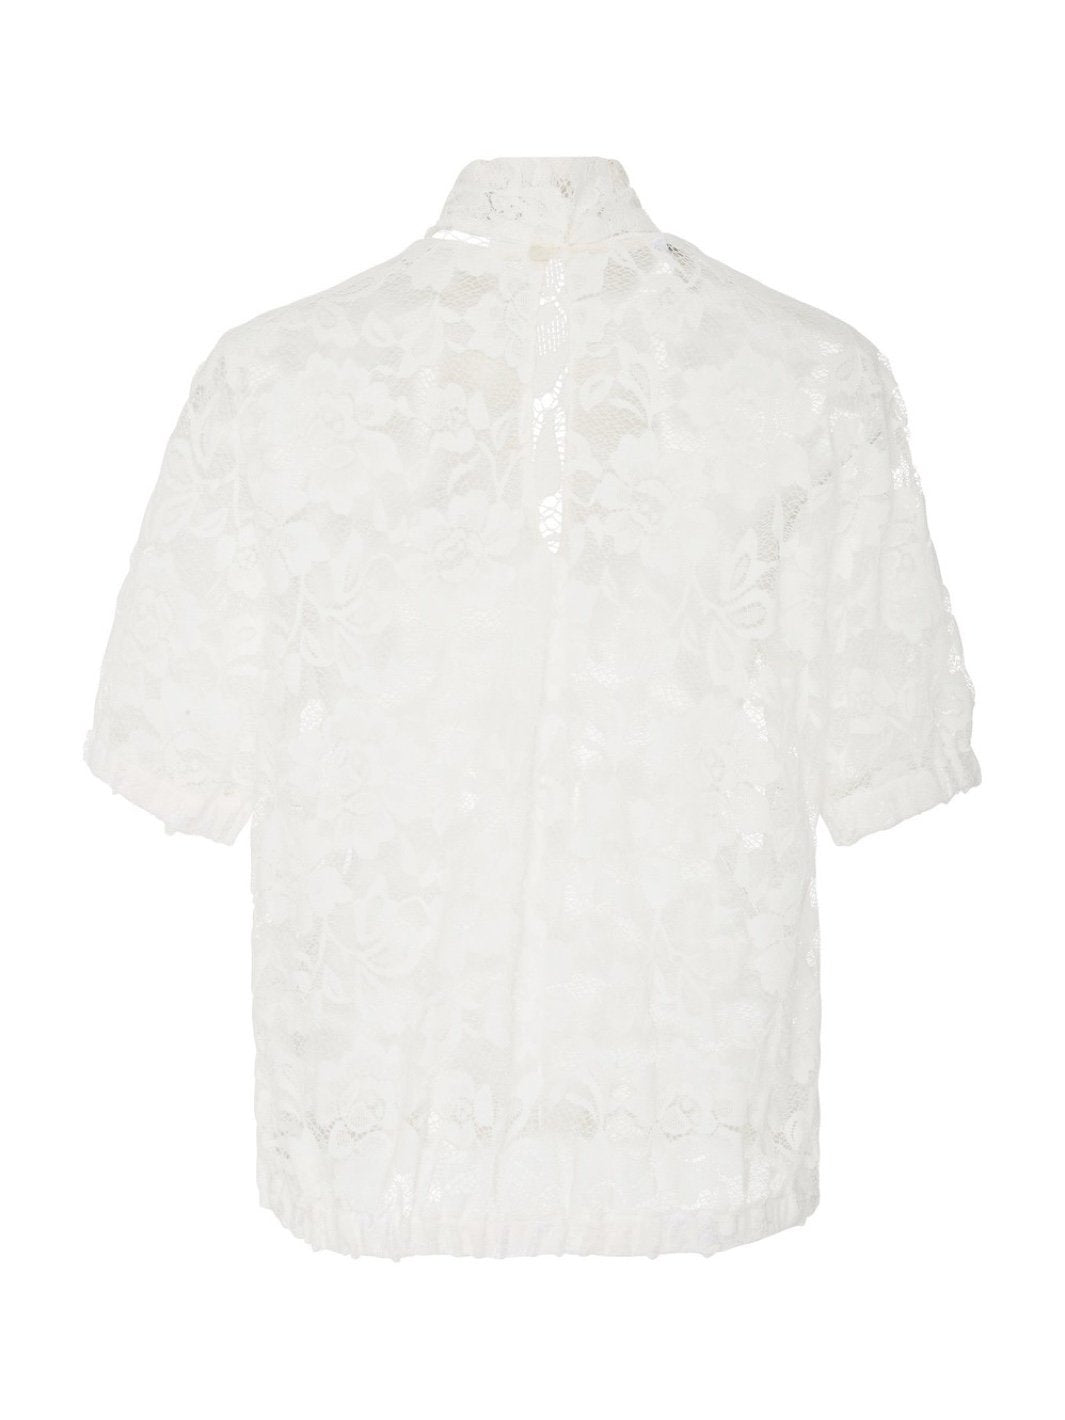 Stefy Lace White Top - The Bobby Boga